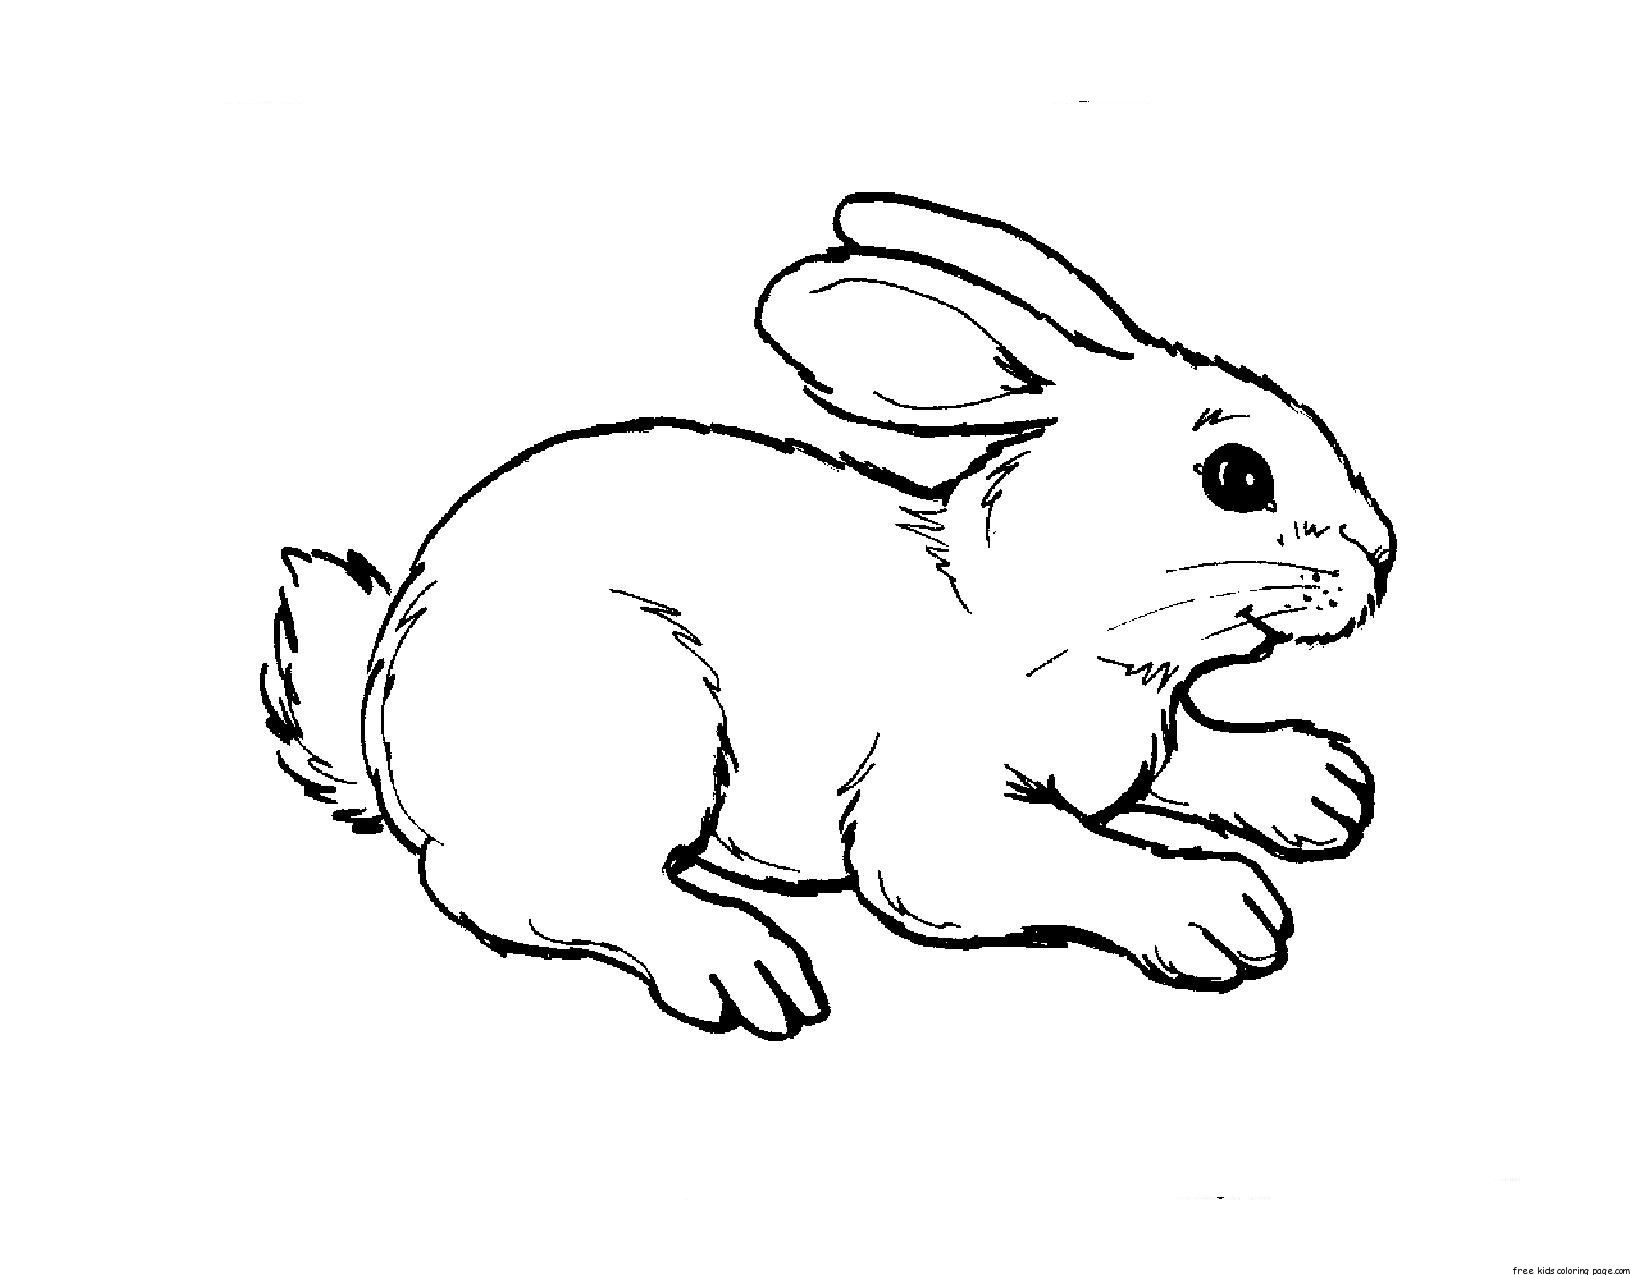 Bunny Animals Coloring Pages For Small Kids Bunny Coloring Pages Farm Animal Coloring Pages Animal Coloring Pages